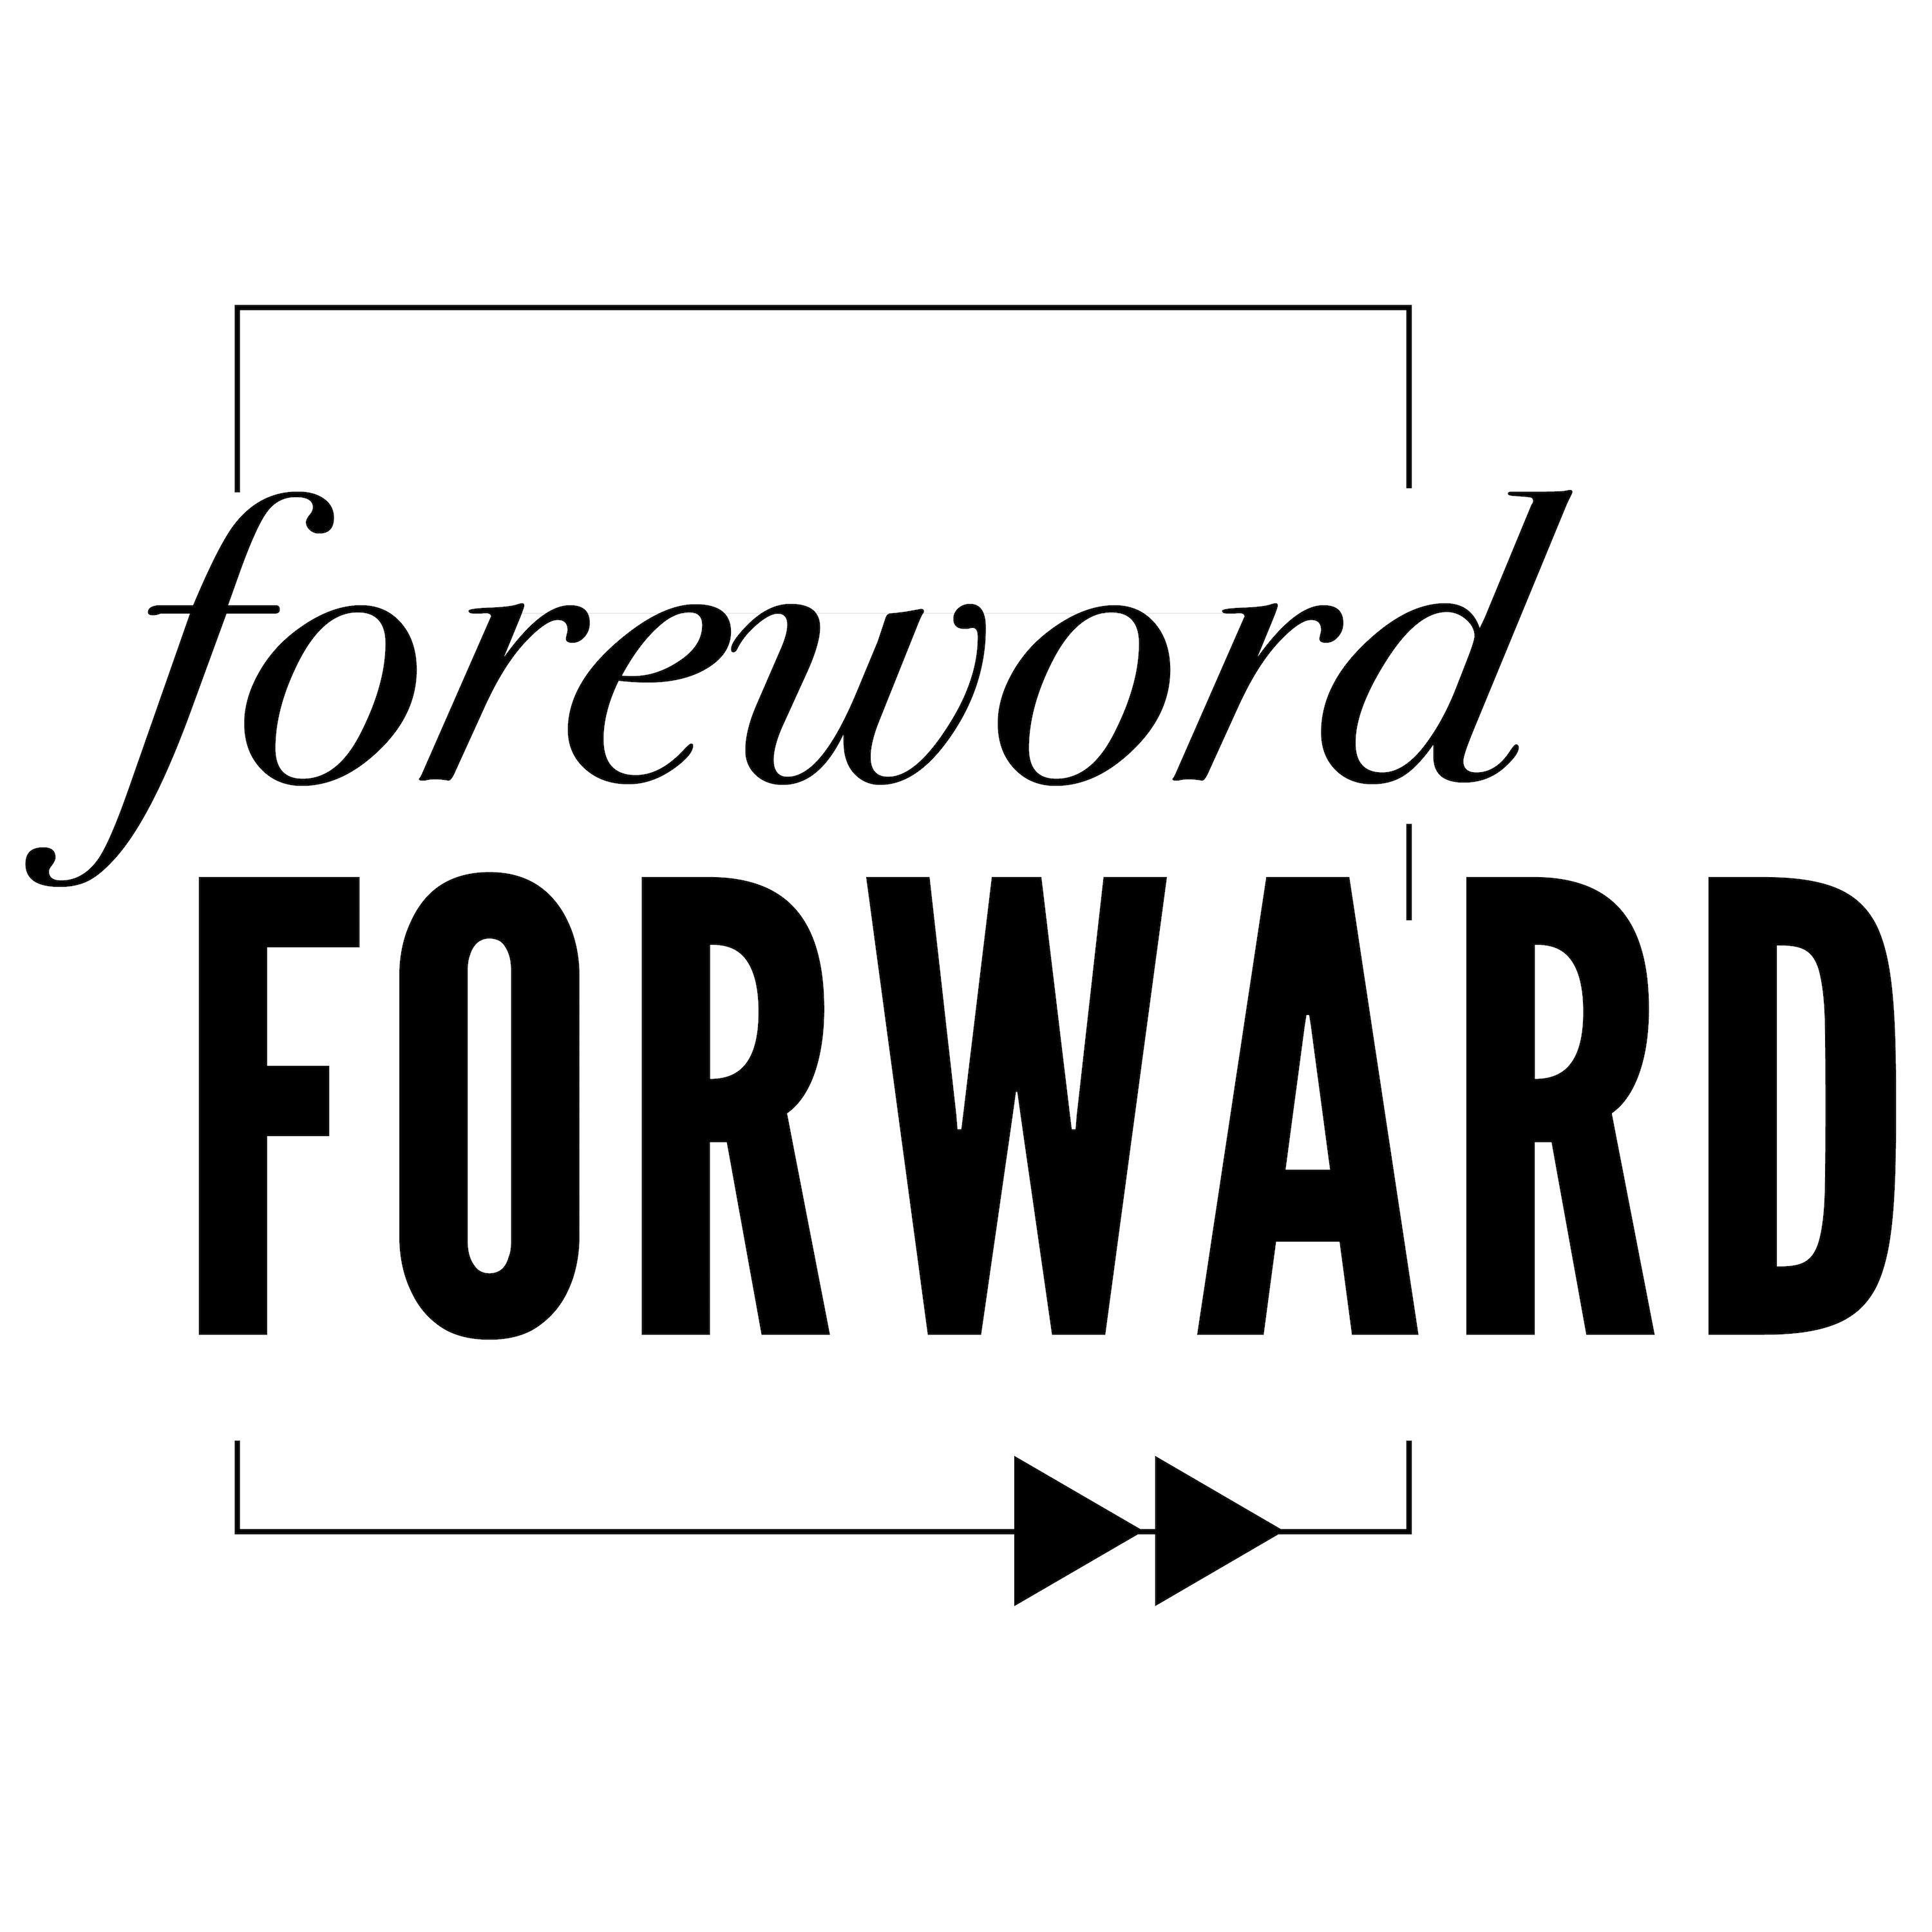 Foreword Forward